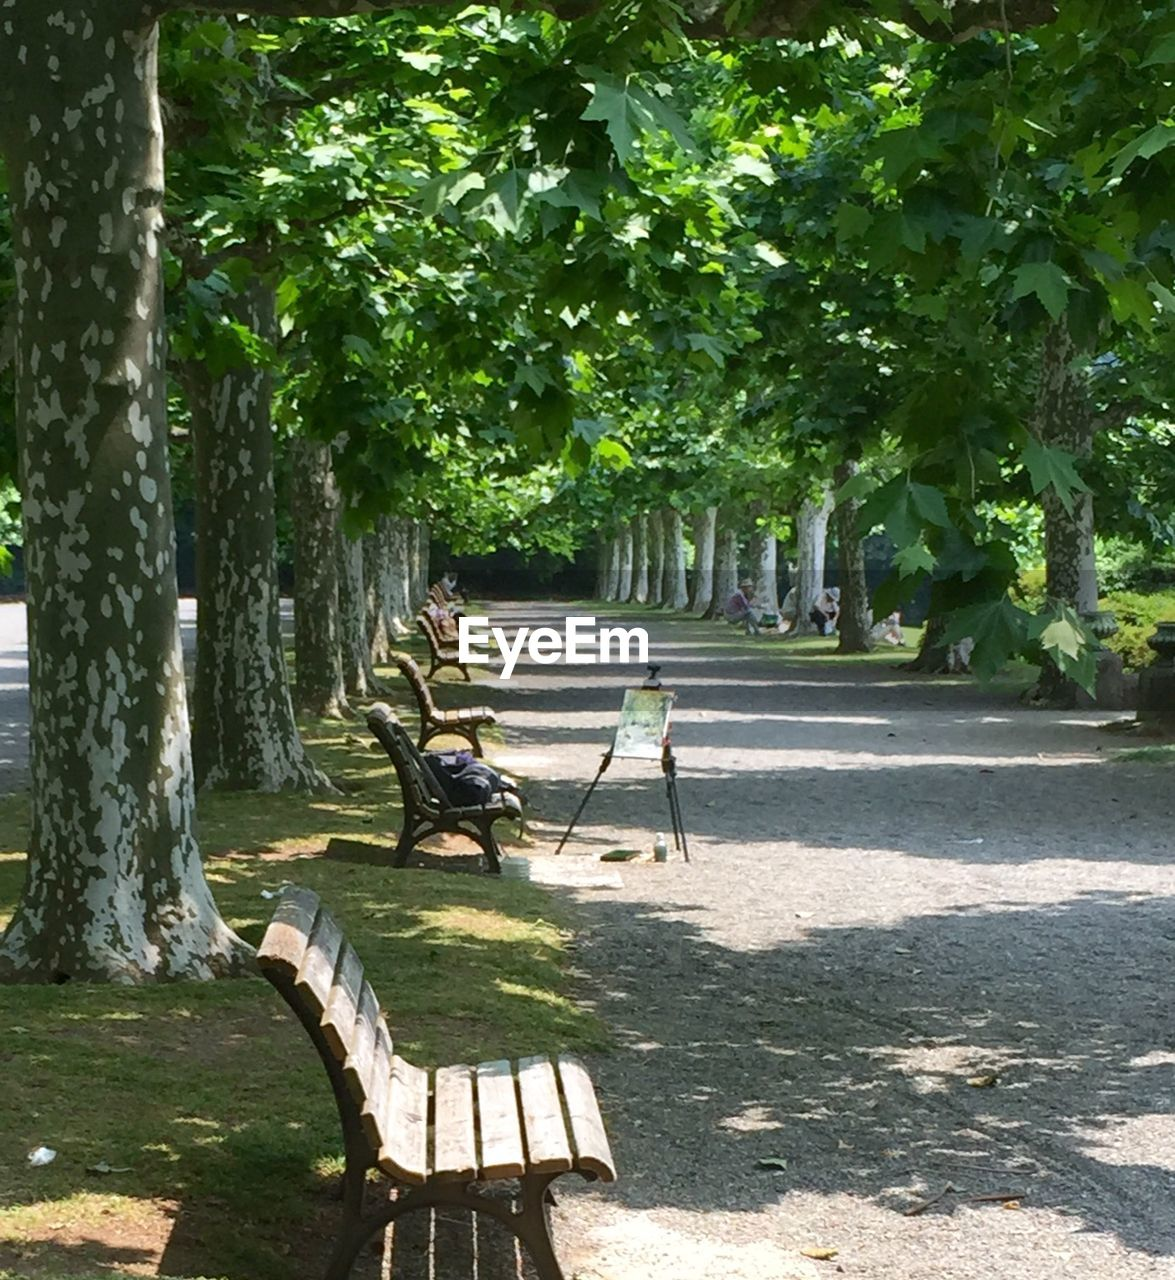 Benches by road amidst trees in park